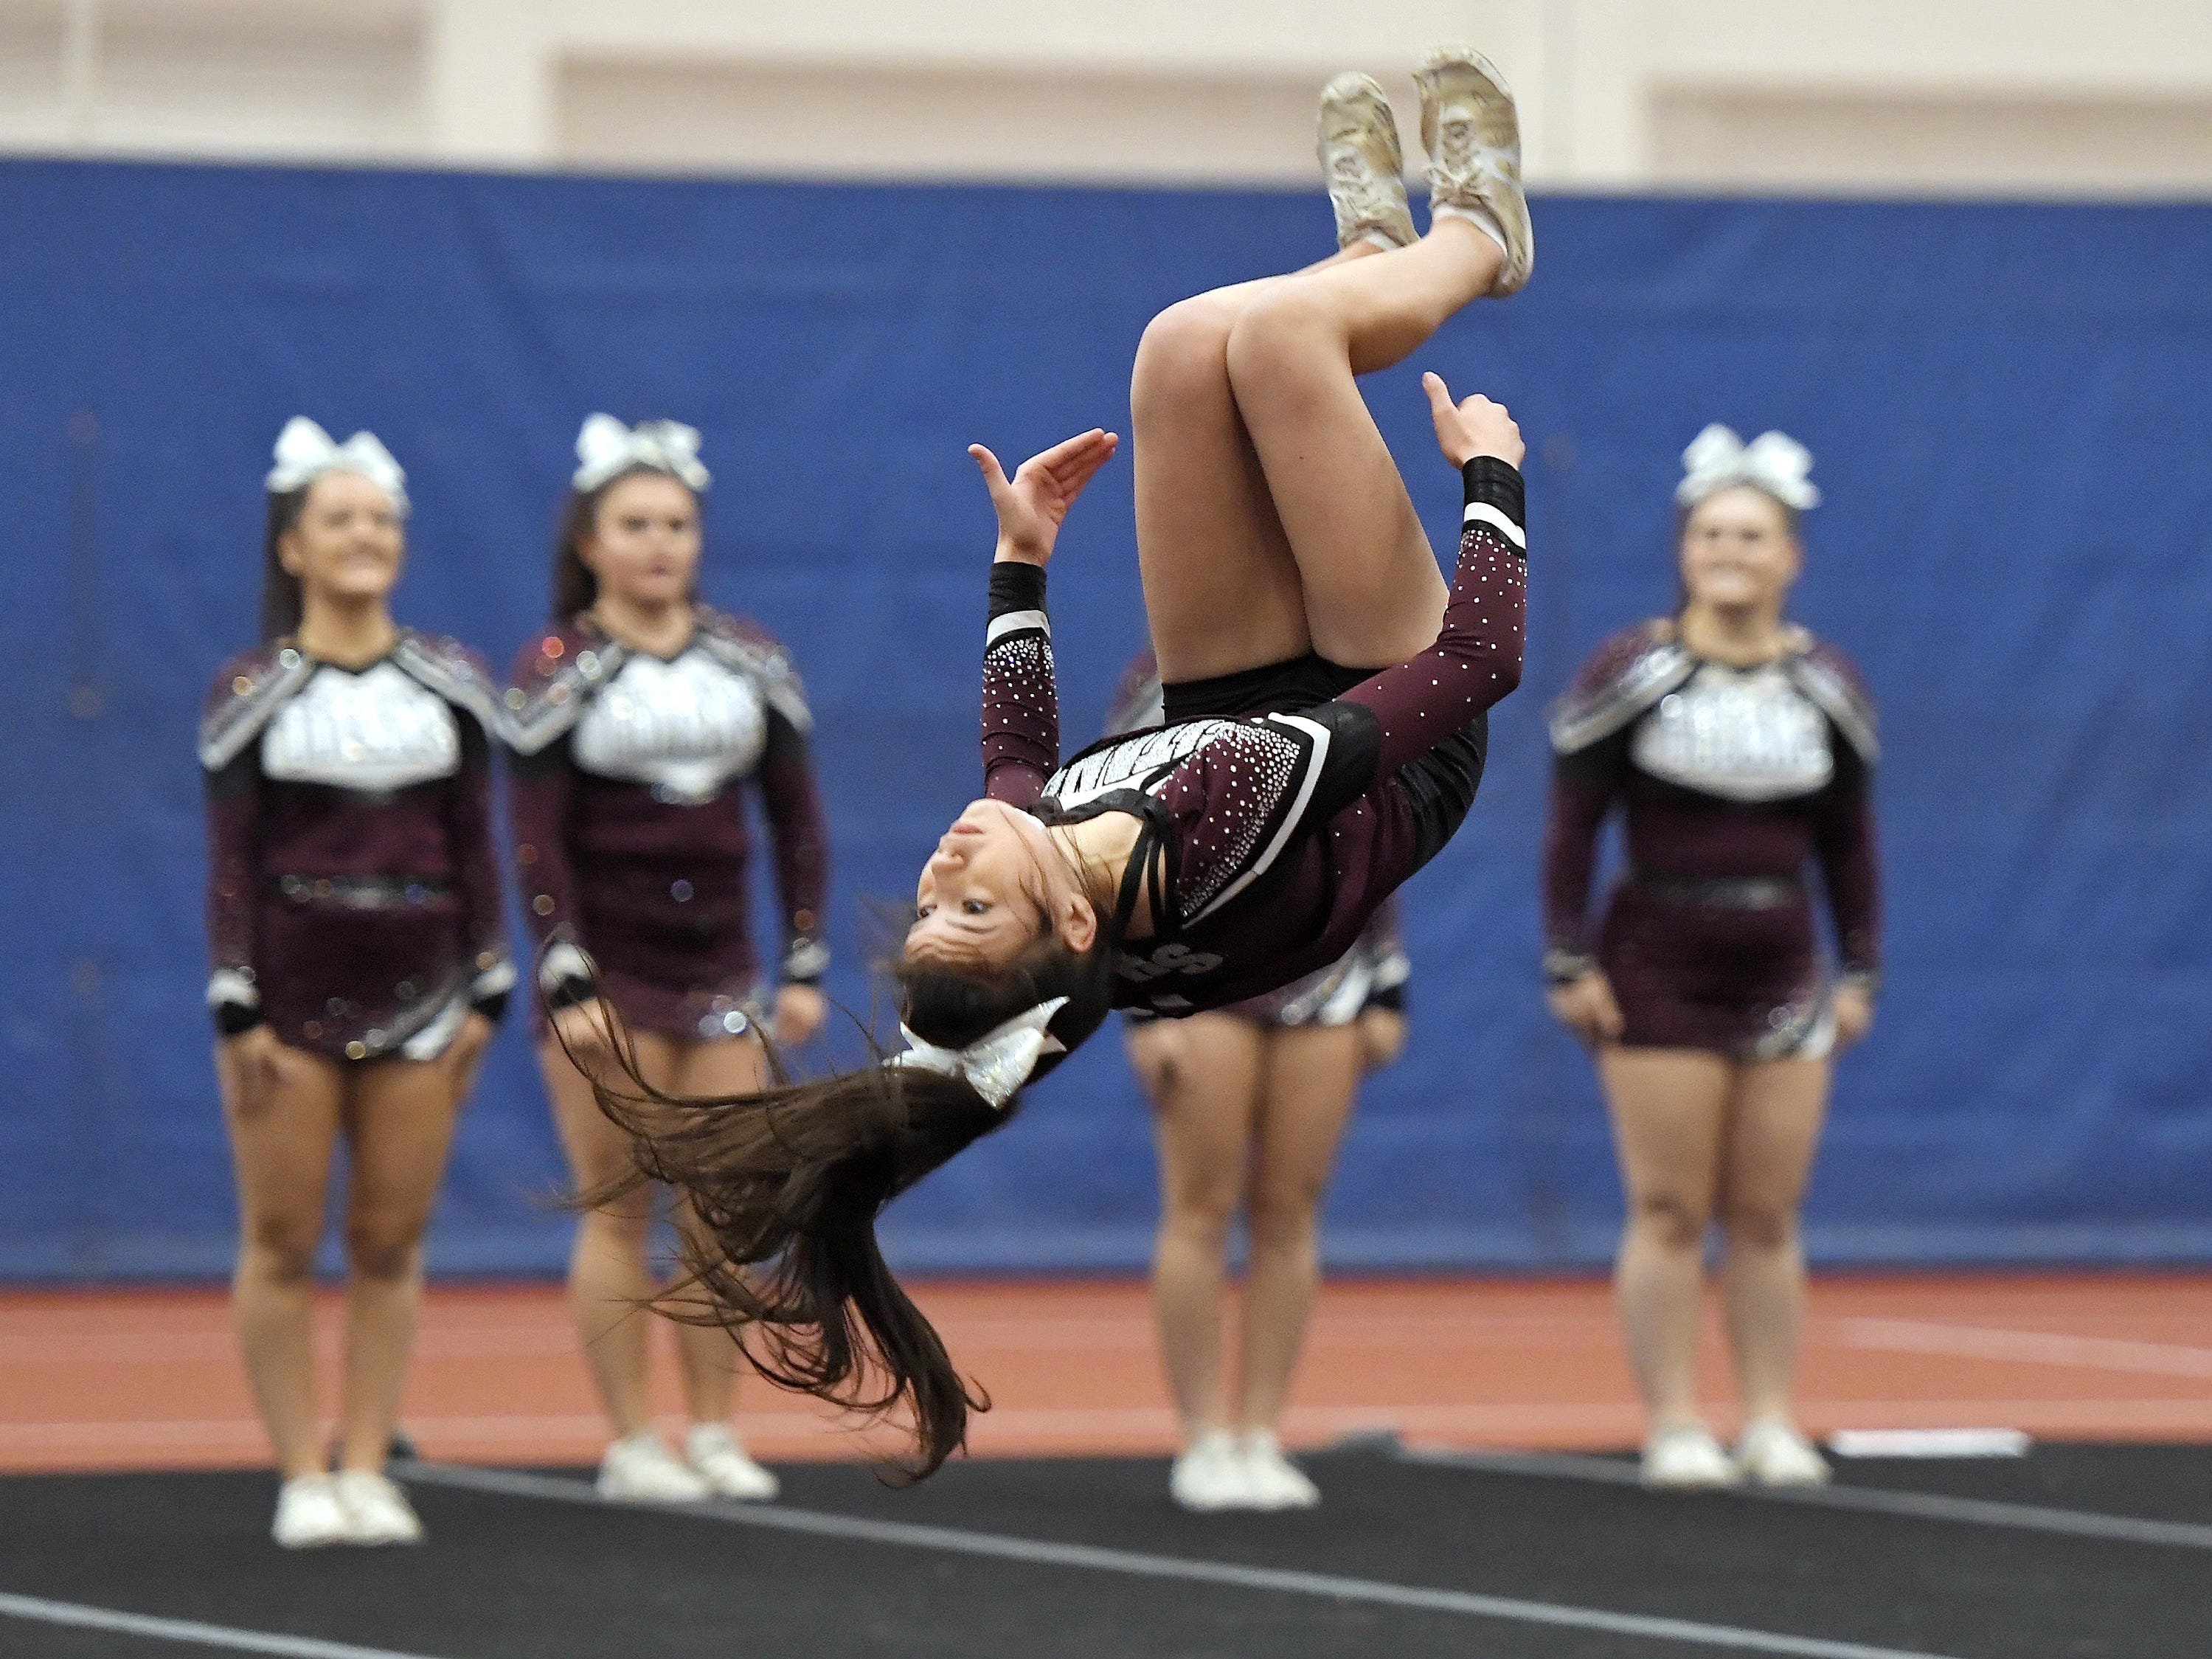 Greece Arcadia cheerleaders perform their routine during the Section V Fall Cheerleading Championships at RIT, Saturday, Oct. 27, 2018.